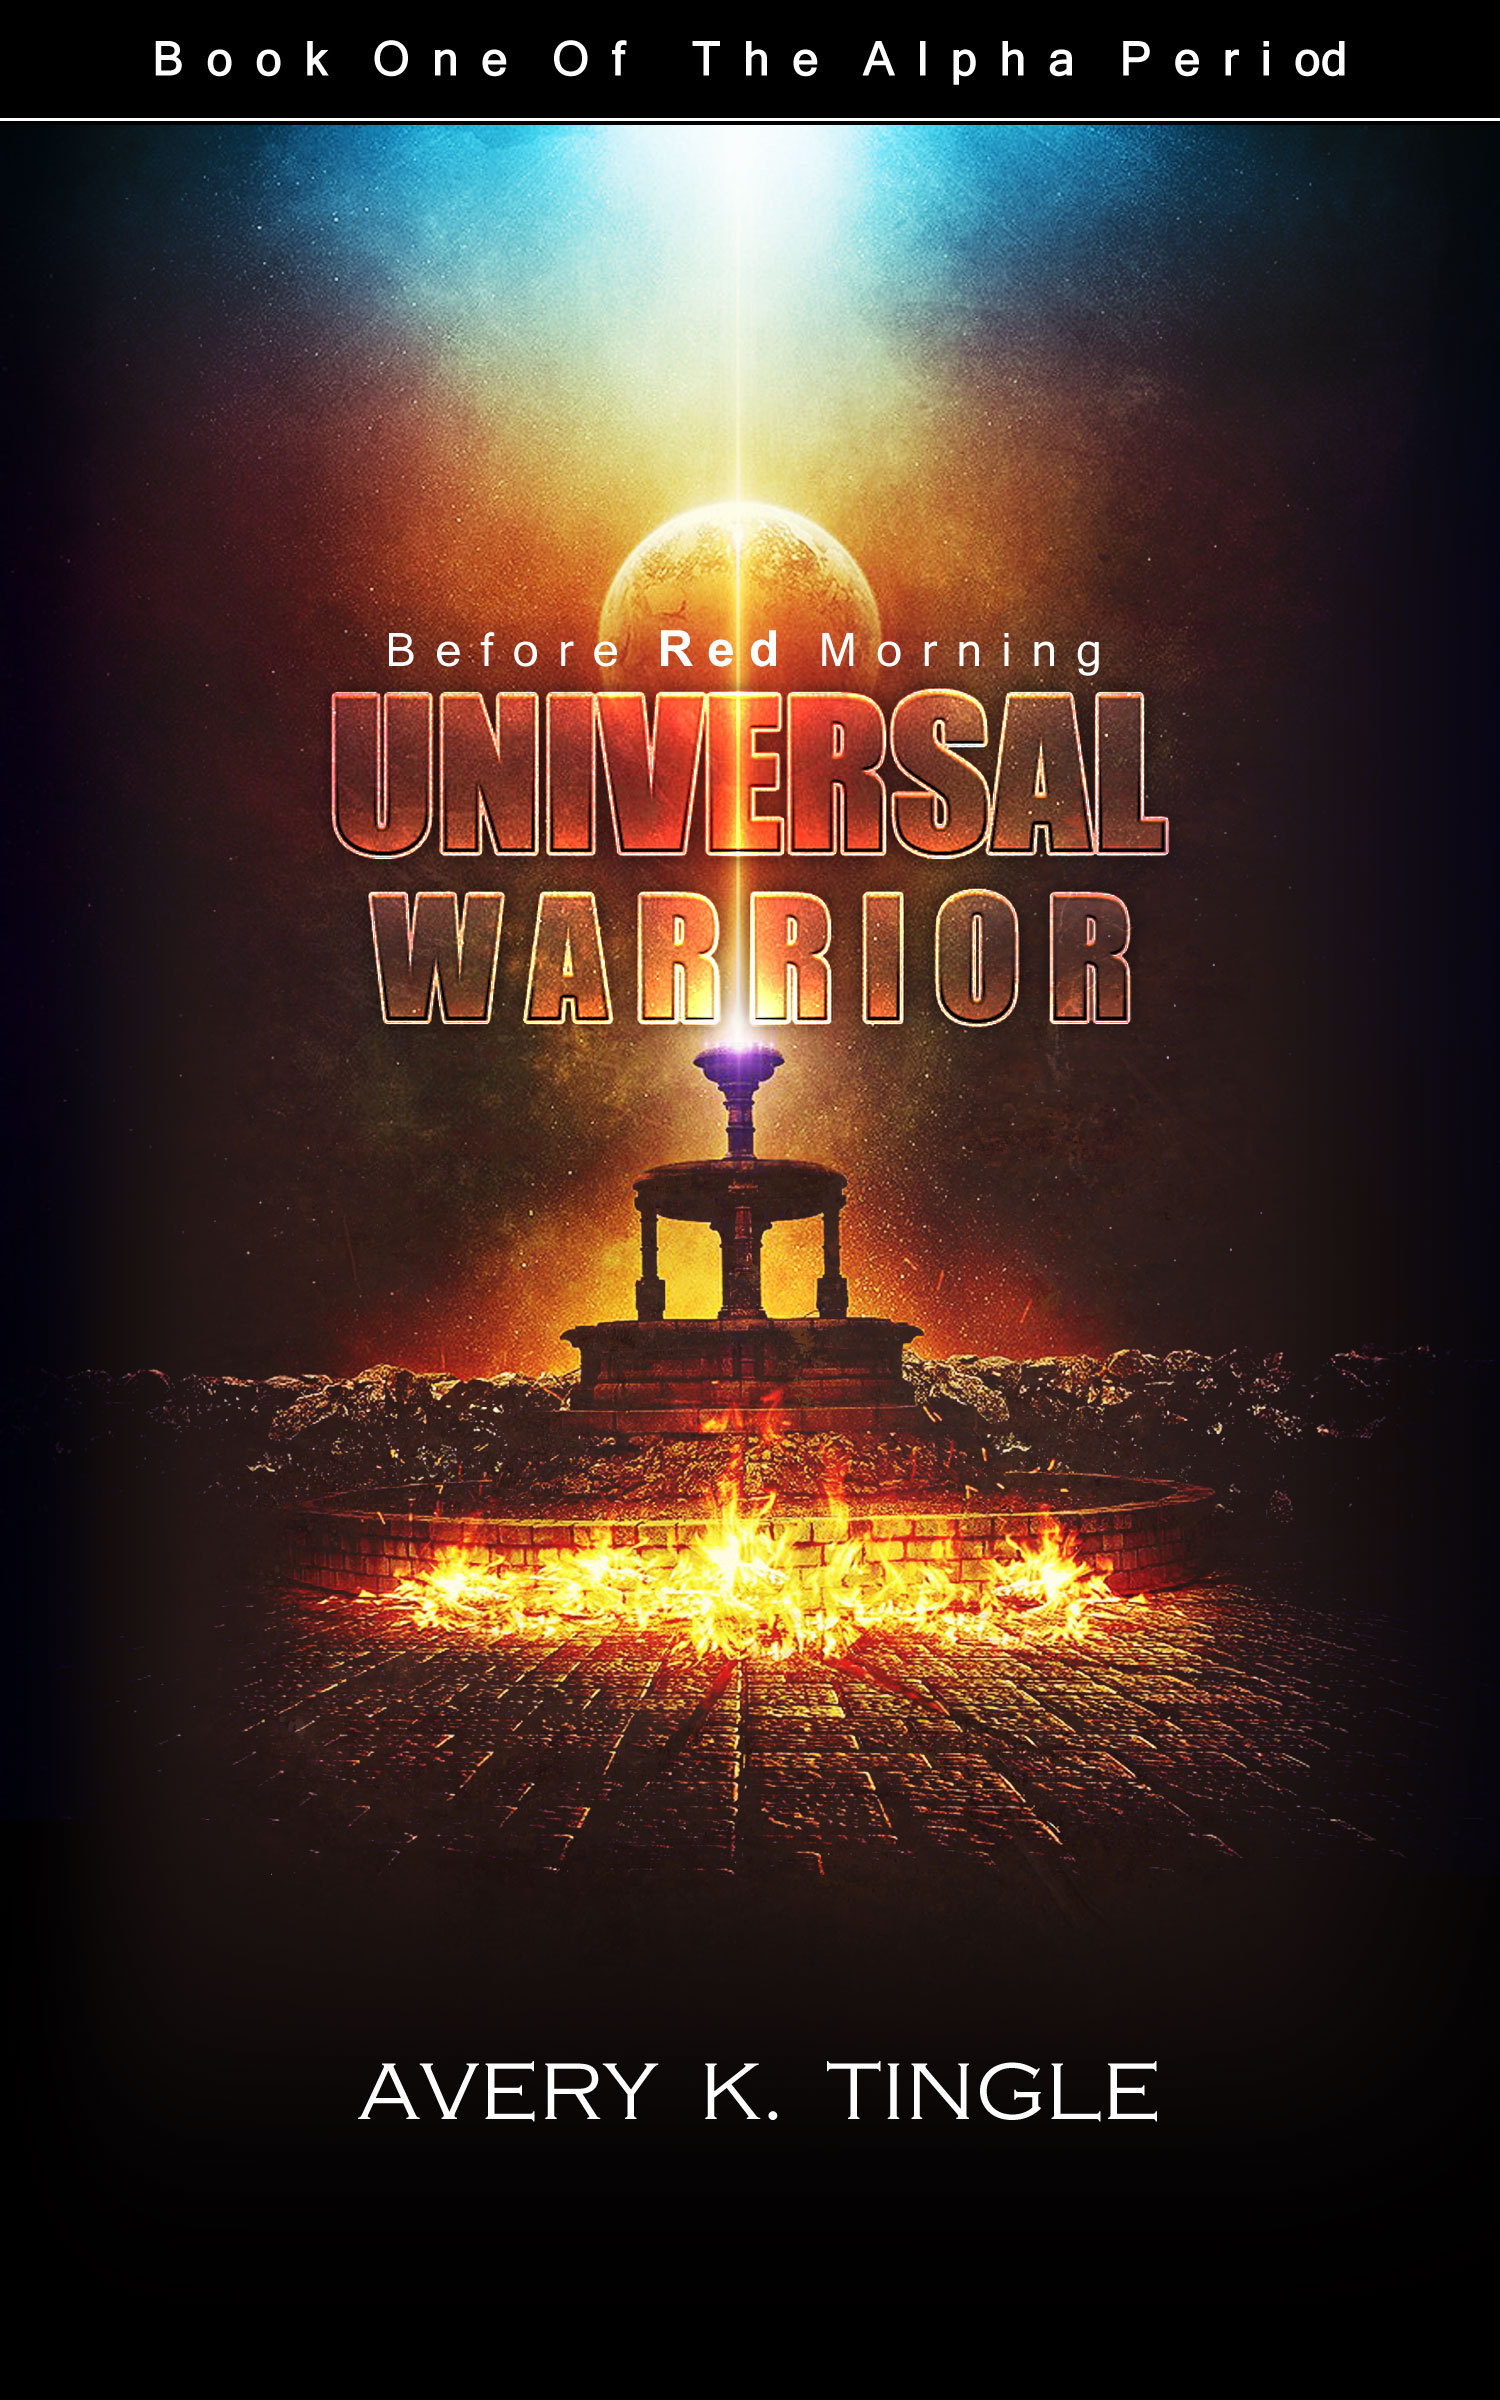 Universal Warrior: Before Red Morning